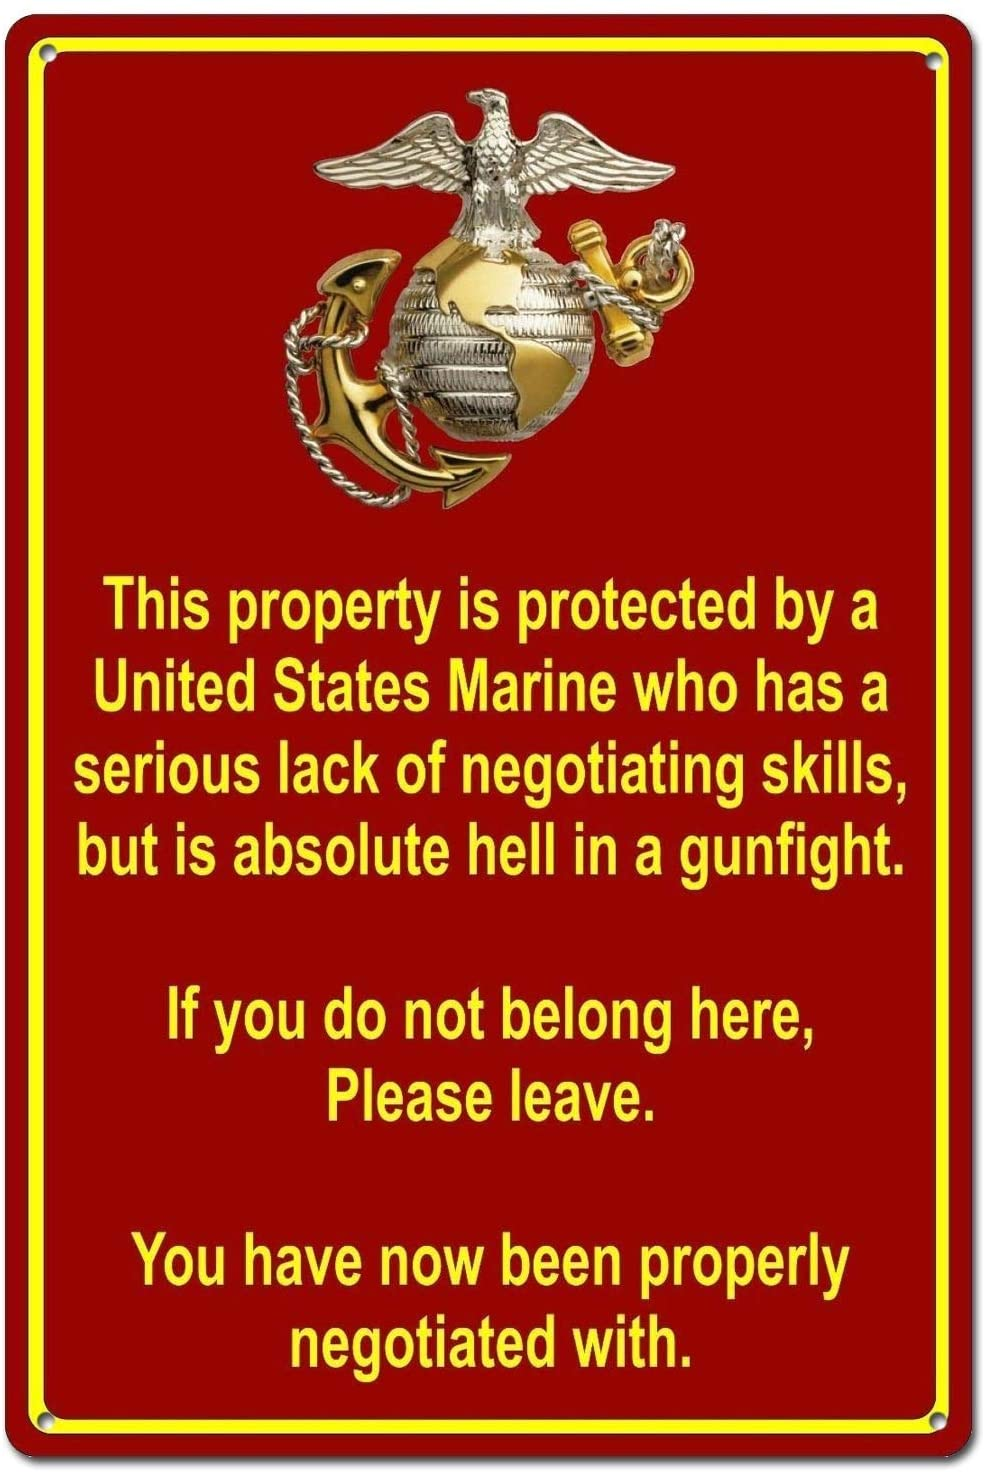 Property Protected by Marine USMC Marine Corps Funny Tin Sign Metal Sign Metal Decor Wall Sign Wall Poster Wall Decor Door Plaque TIN Sign 7.8X11.8 INCH